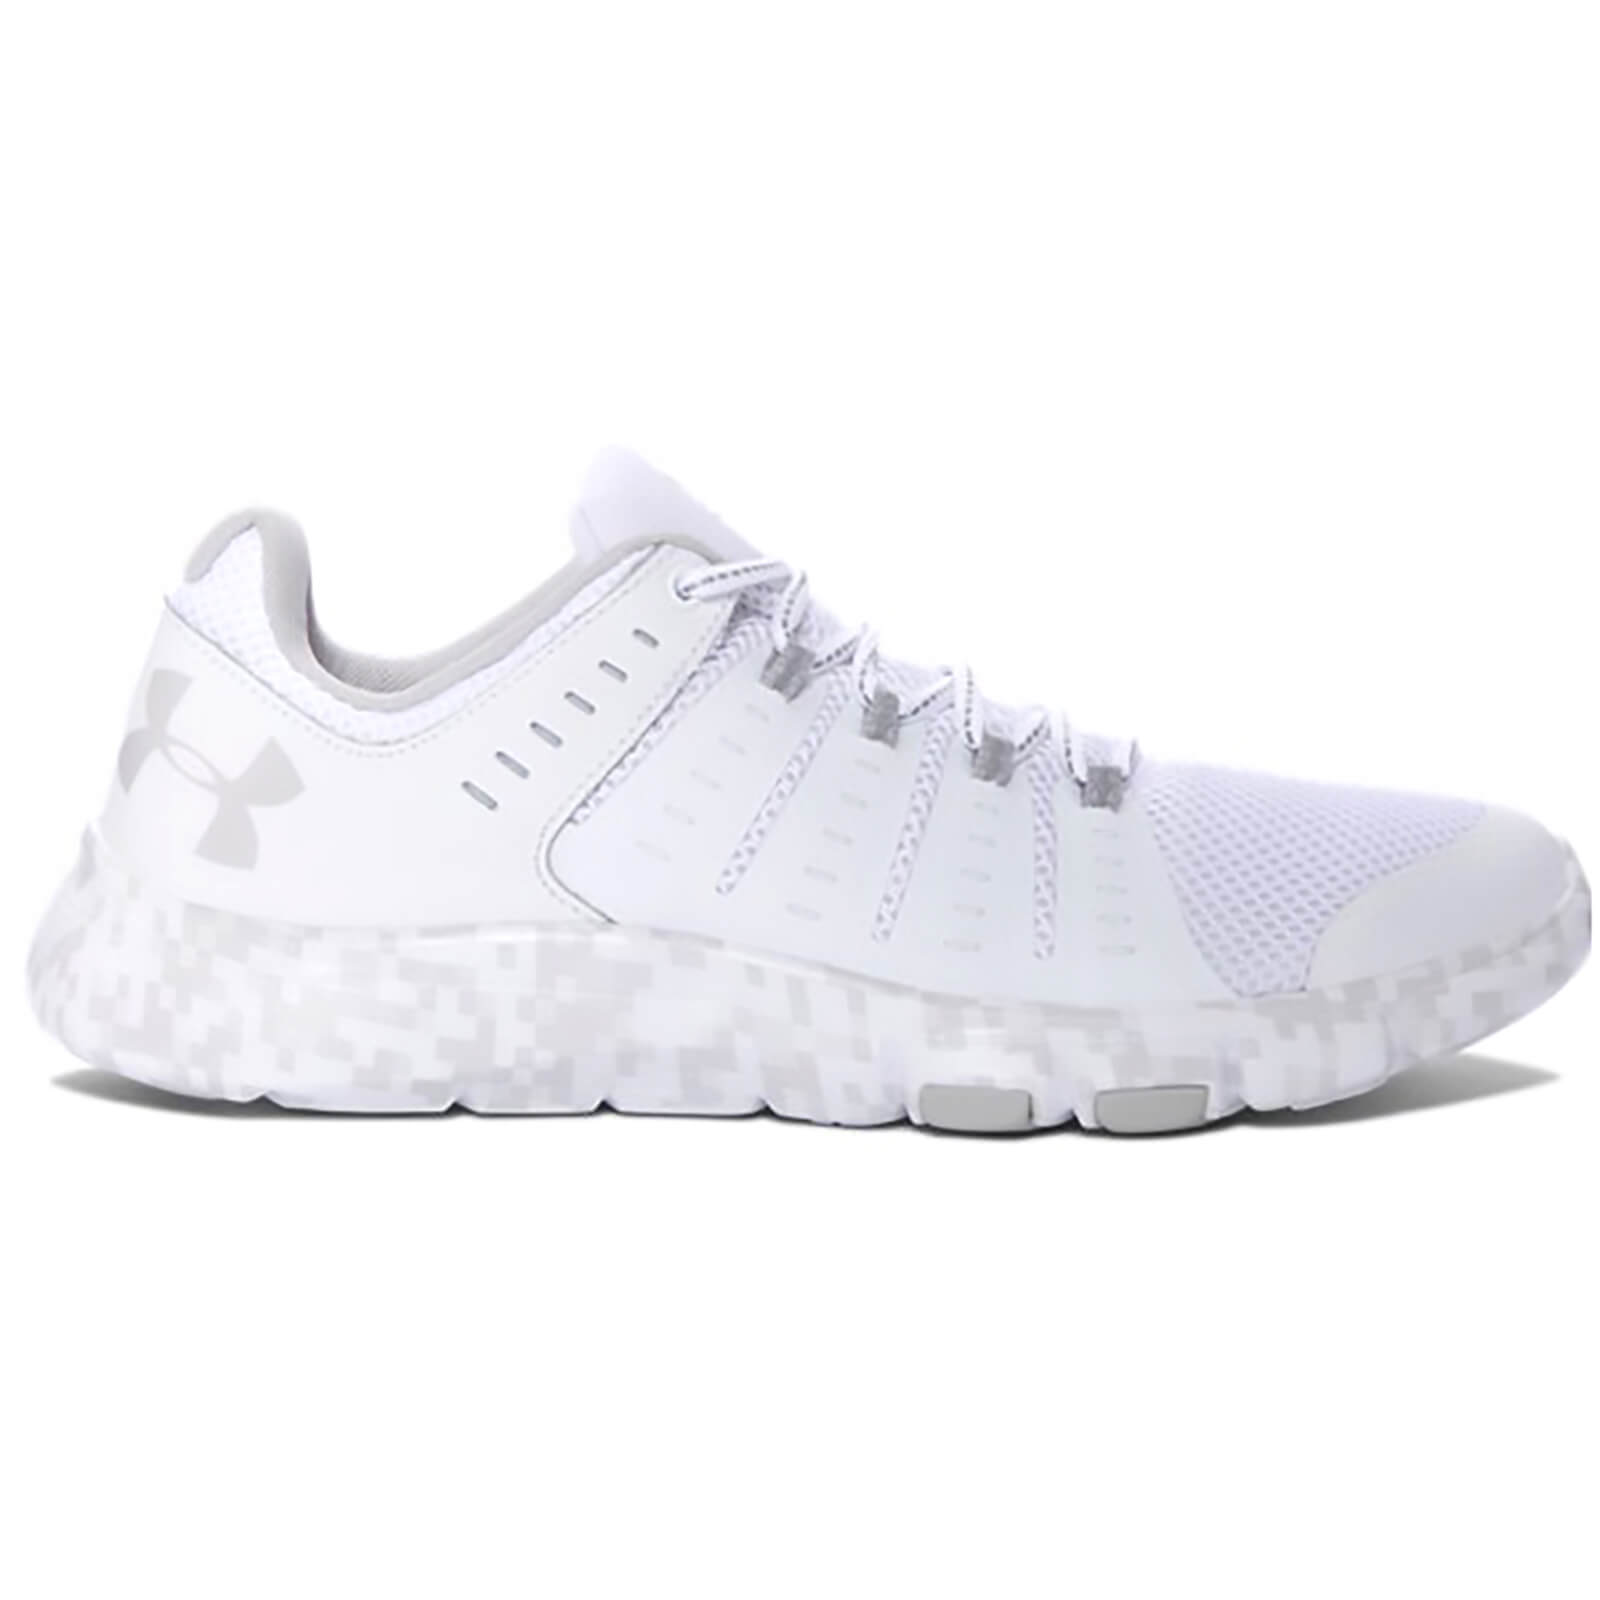 reputable site a1d82 9737f Under Armour Men's Micro G Limitless 2 SE Training Shoes - White